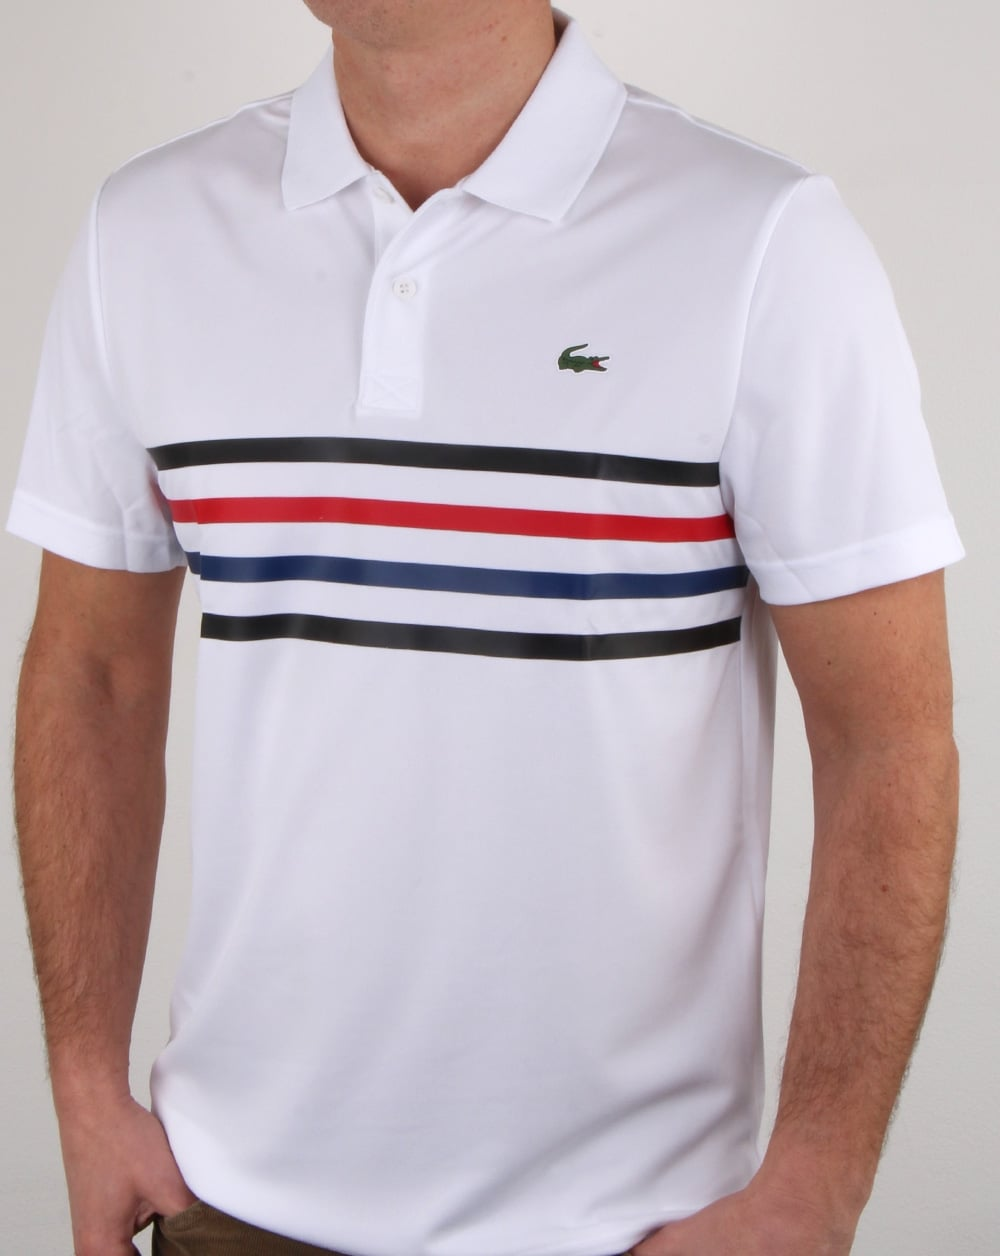 c485a6ab1b30f Lacoste Lacoste Chest Stripe Polo Shirt White black red